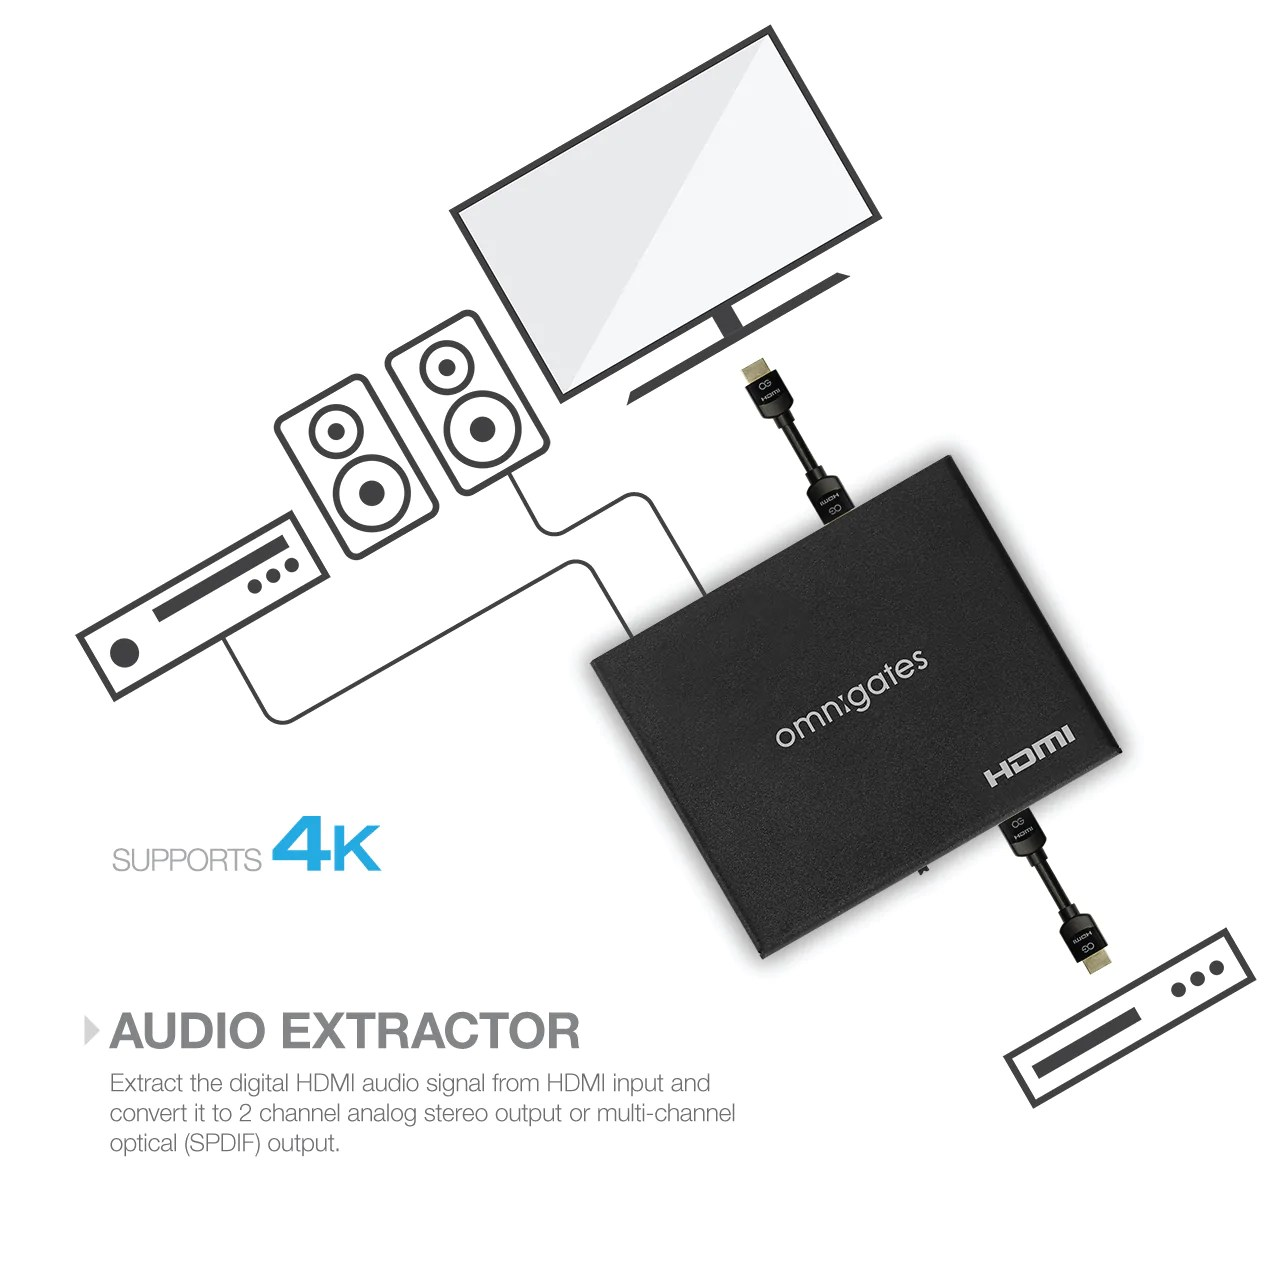 medium resolution of  hdmi 18gbps audio extractor with hdcp 2 2 applications